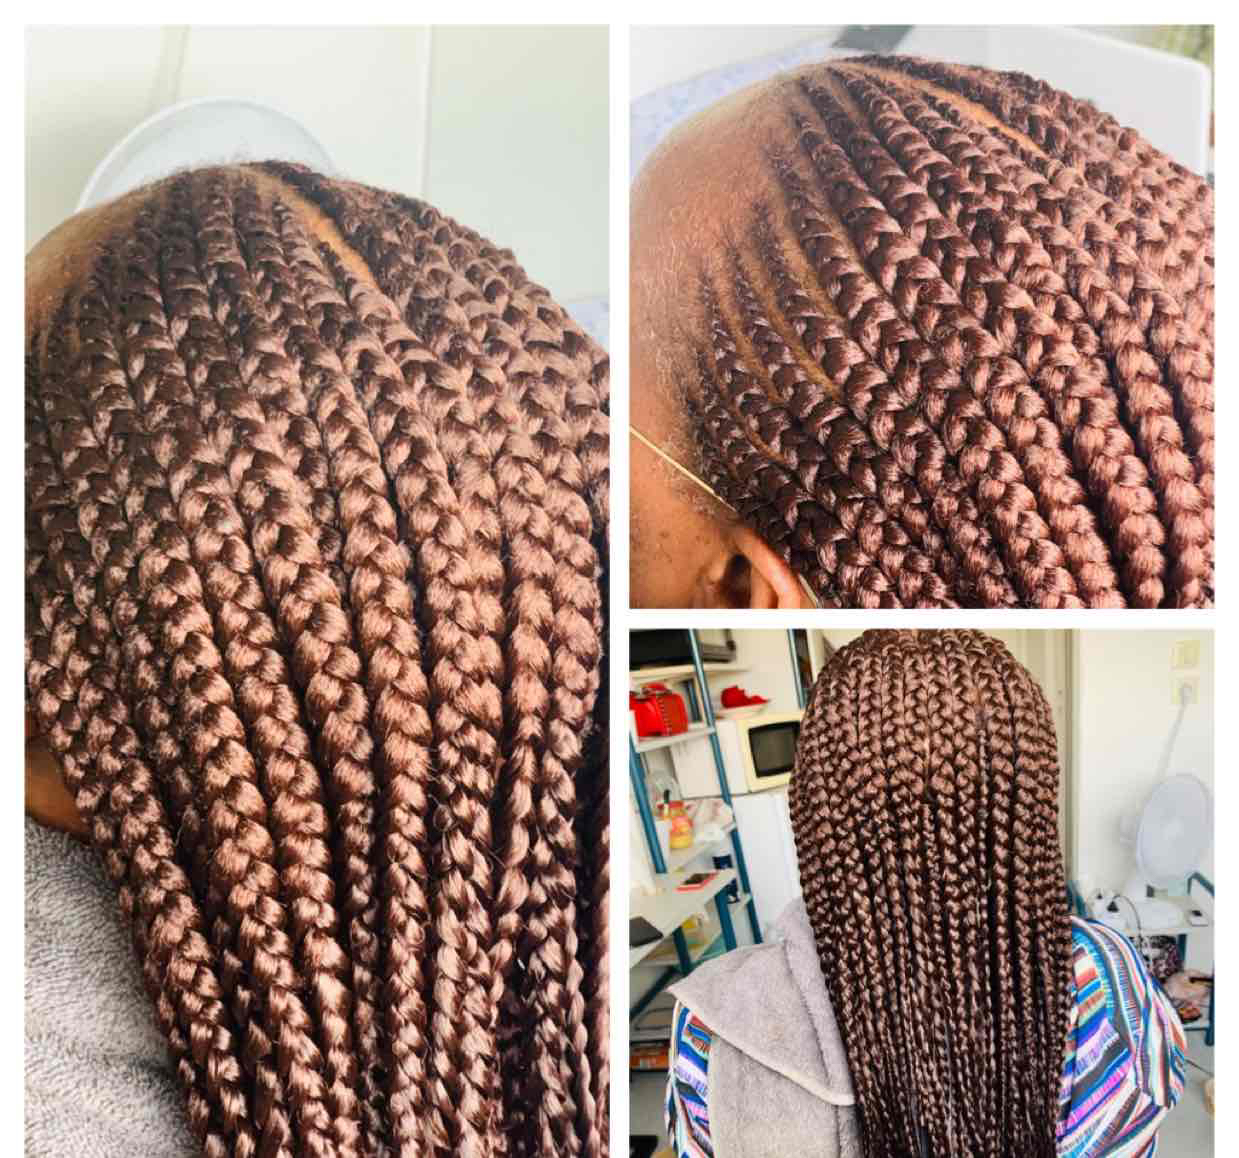 salon de coiffure afro tresse tresses box braids crochet braids vanilles tissages paris 75 77 78 91 92 93 94 95 USMDNVKB